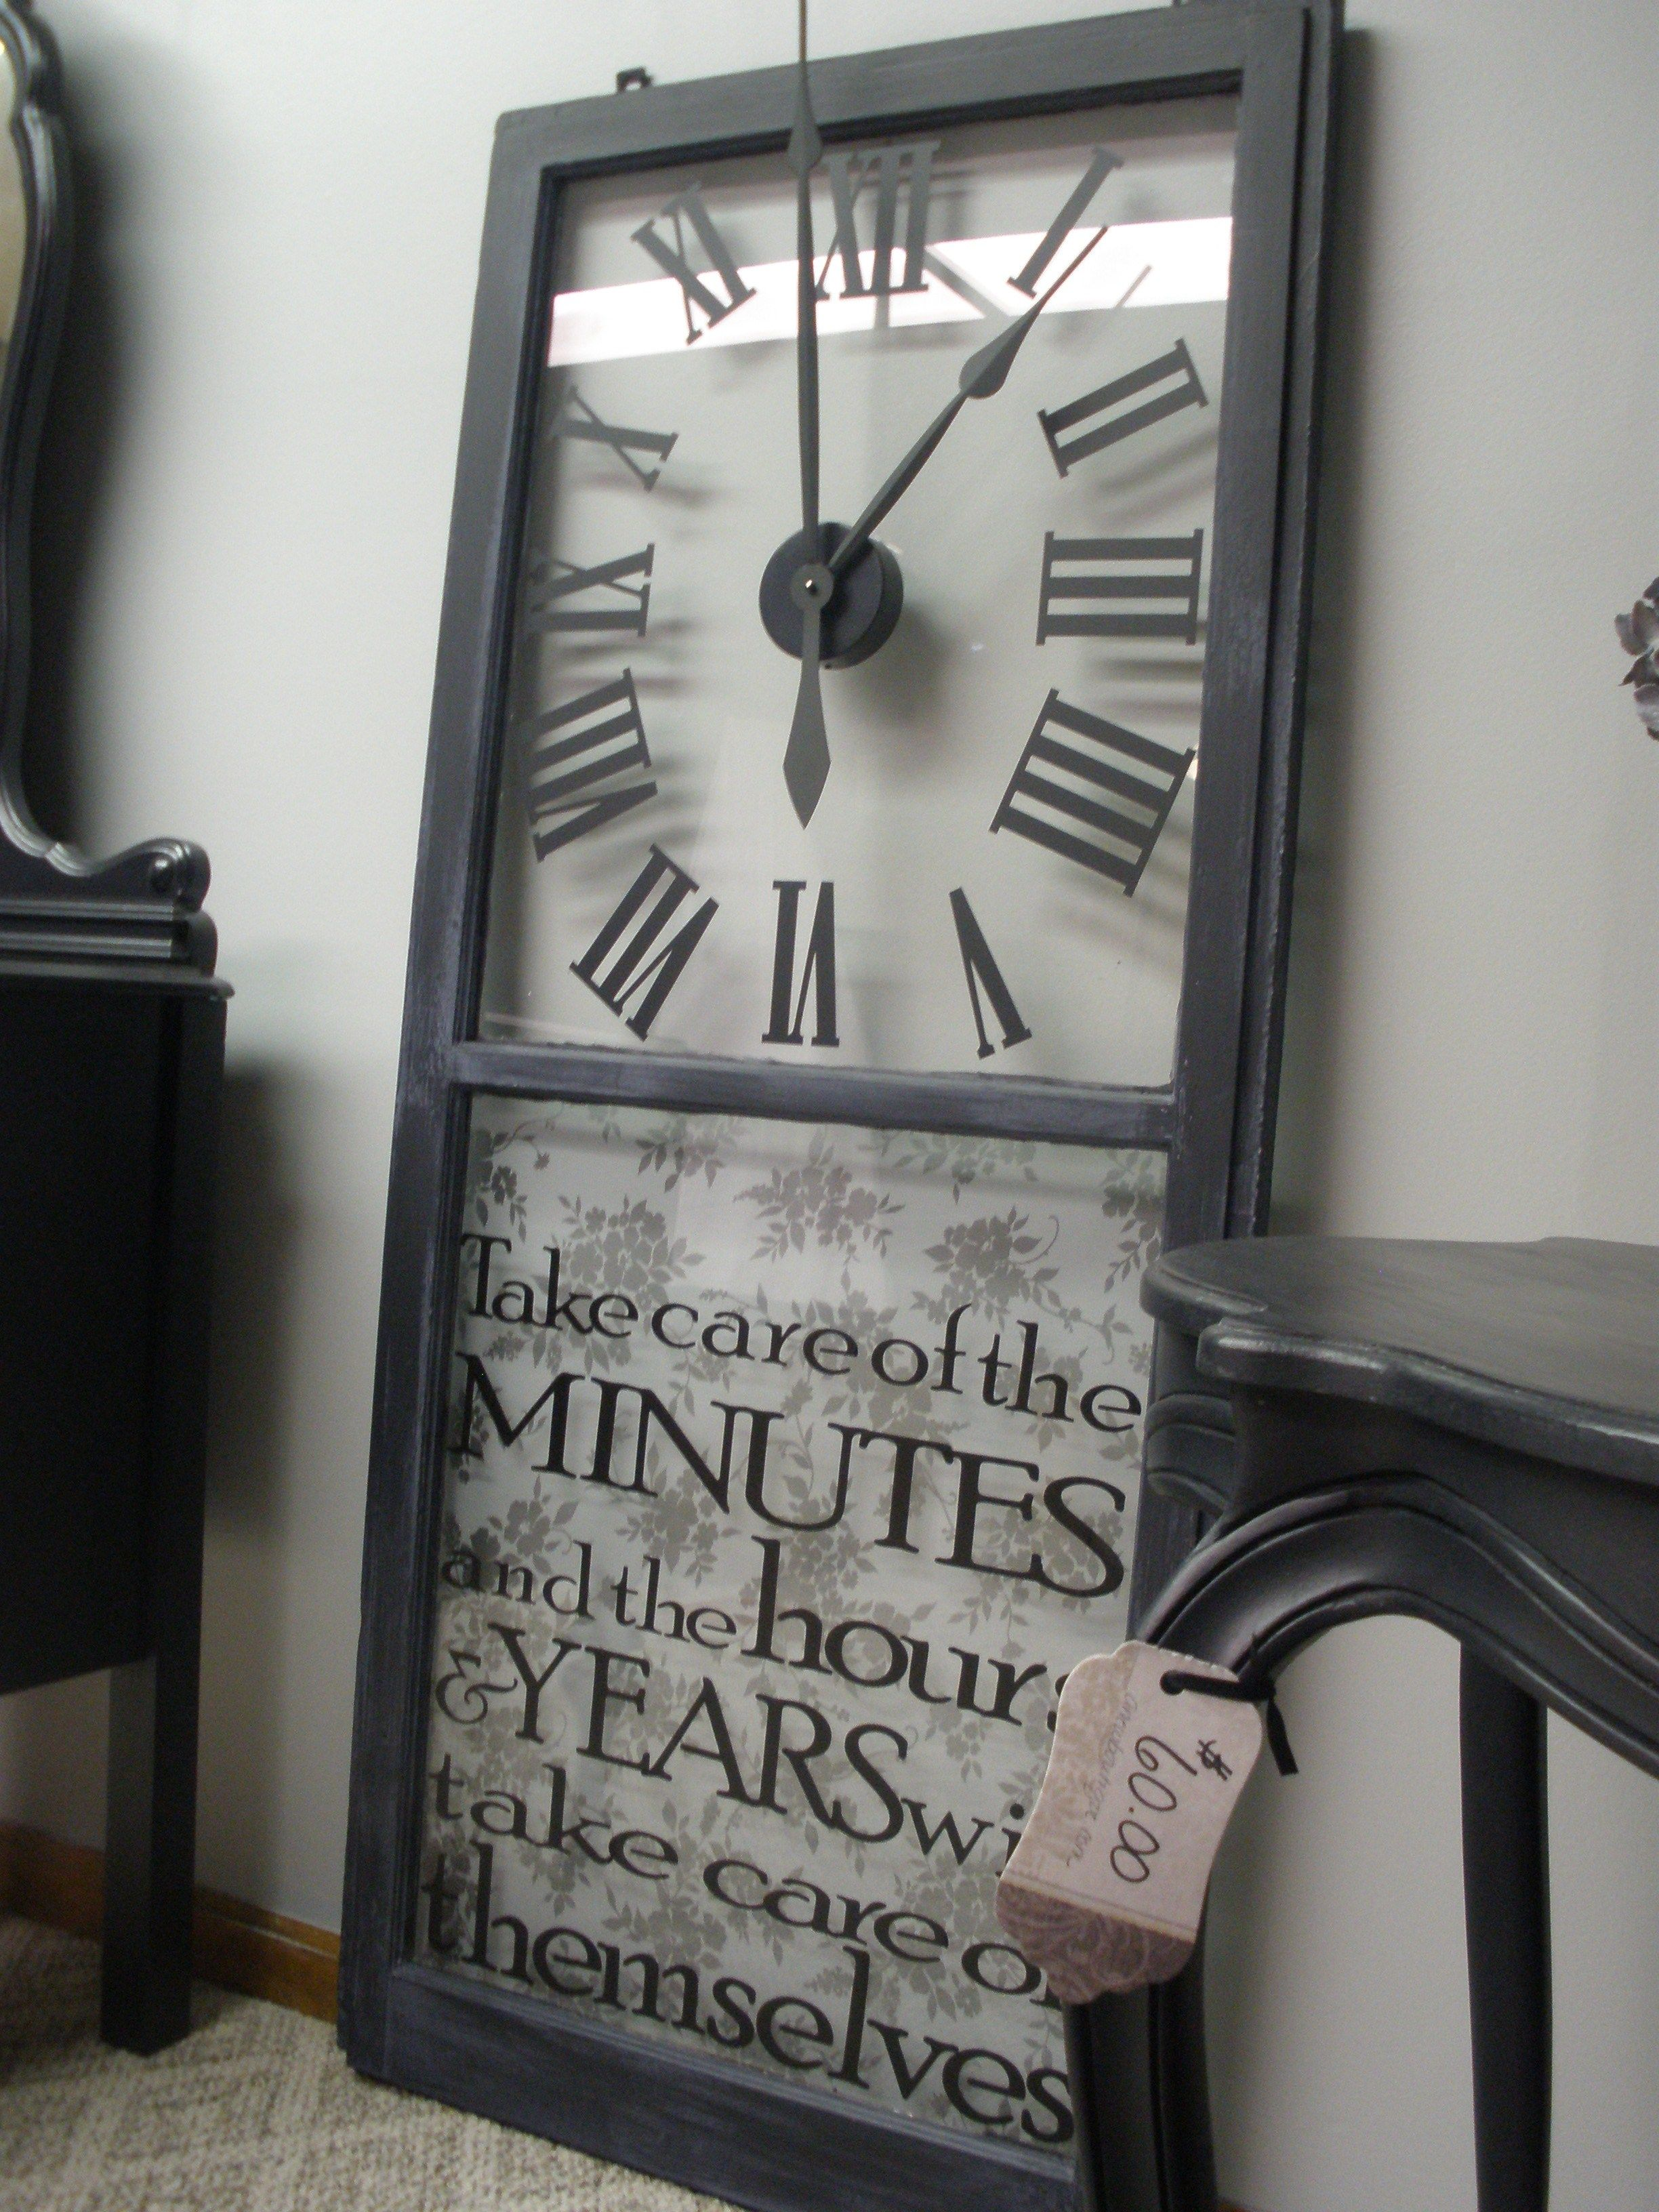 My dad found this old wooden window. After cleaning and painting, I made it into a functional clock! Check out more at www.anewboutique.com